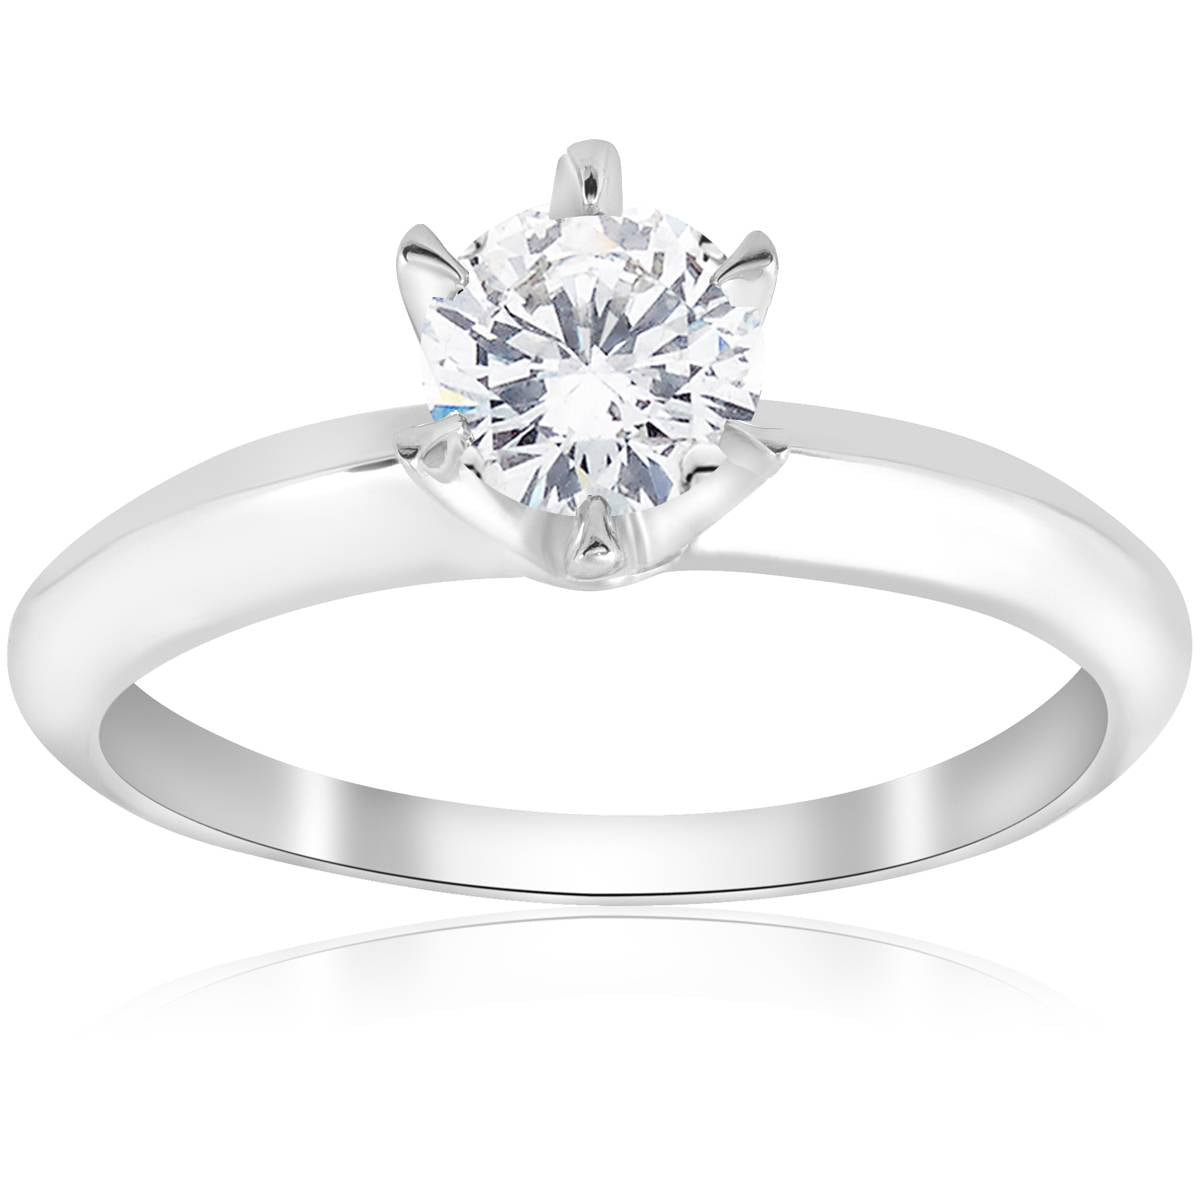 Solitaire Engagement Ring Band Vintage Prong Set Diamond 0.55 Ct 14Kt White Gold by Pompeii3